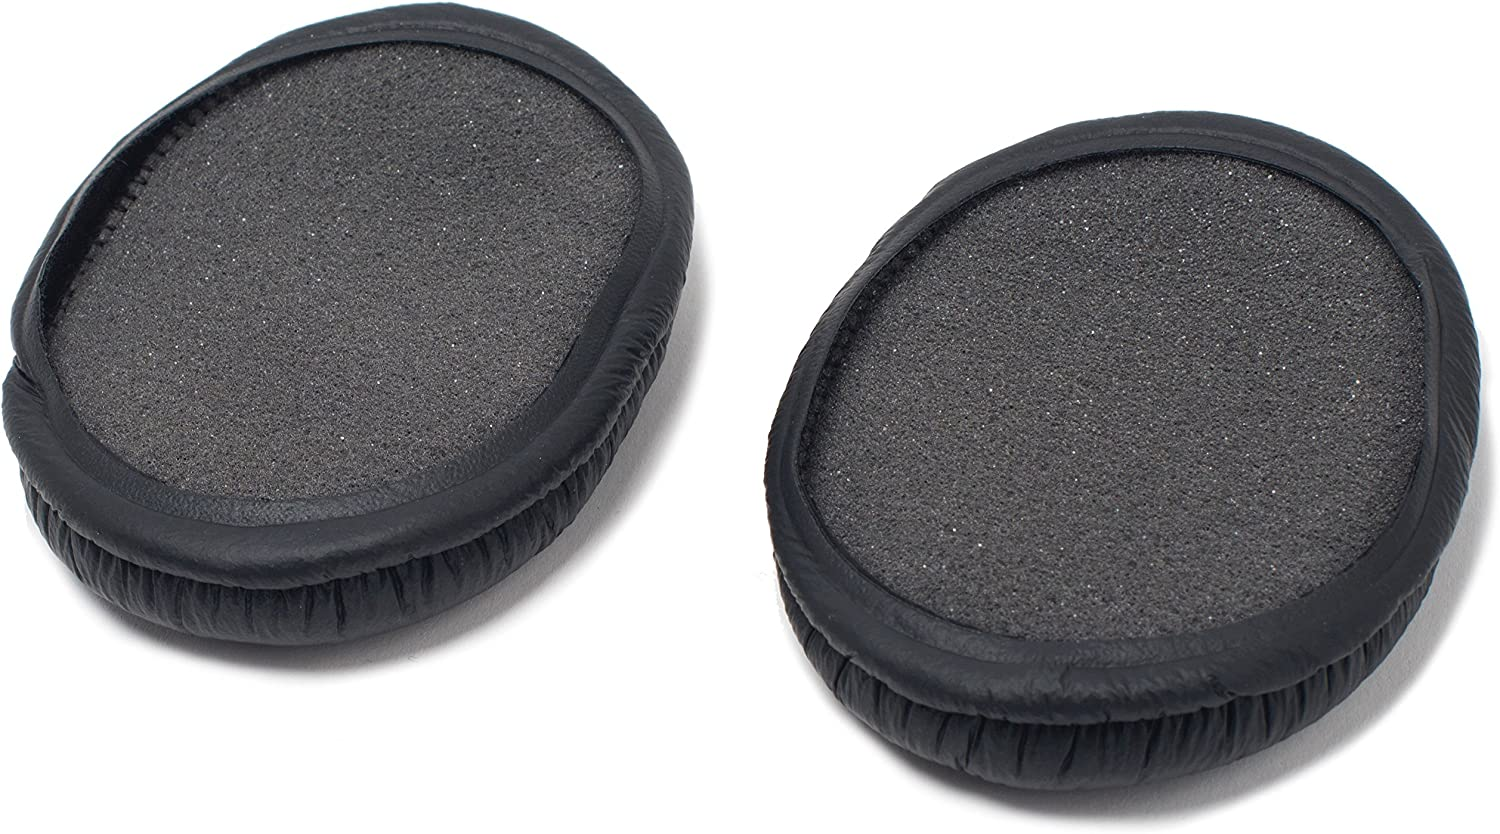 MDR-V7 2 pieces MDR-V6 MDR-CD900ST Headphones 1 pair Genuine Replacement Ear Pads cushions for SONY MDR-7506